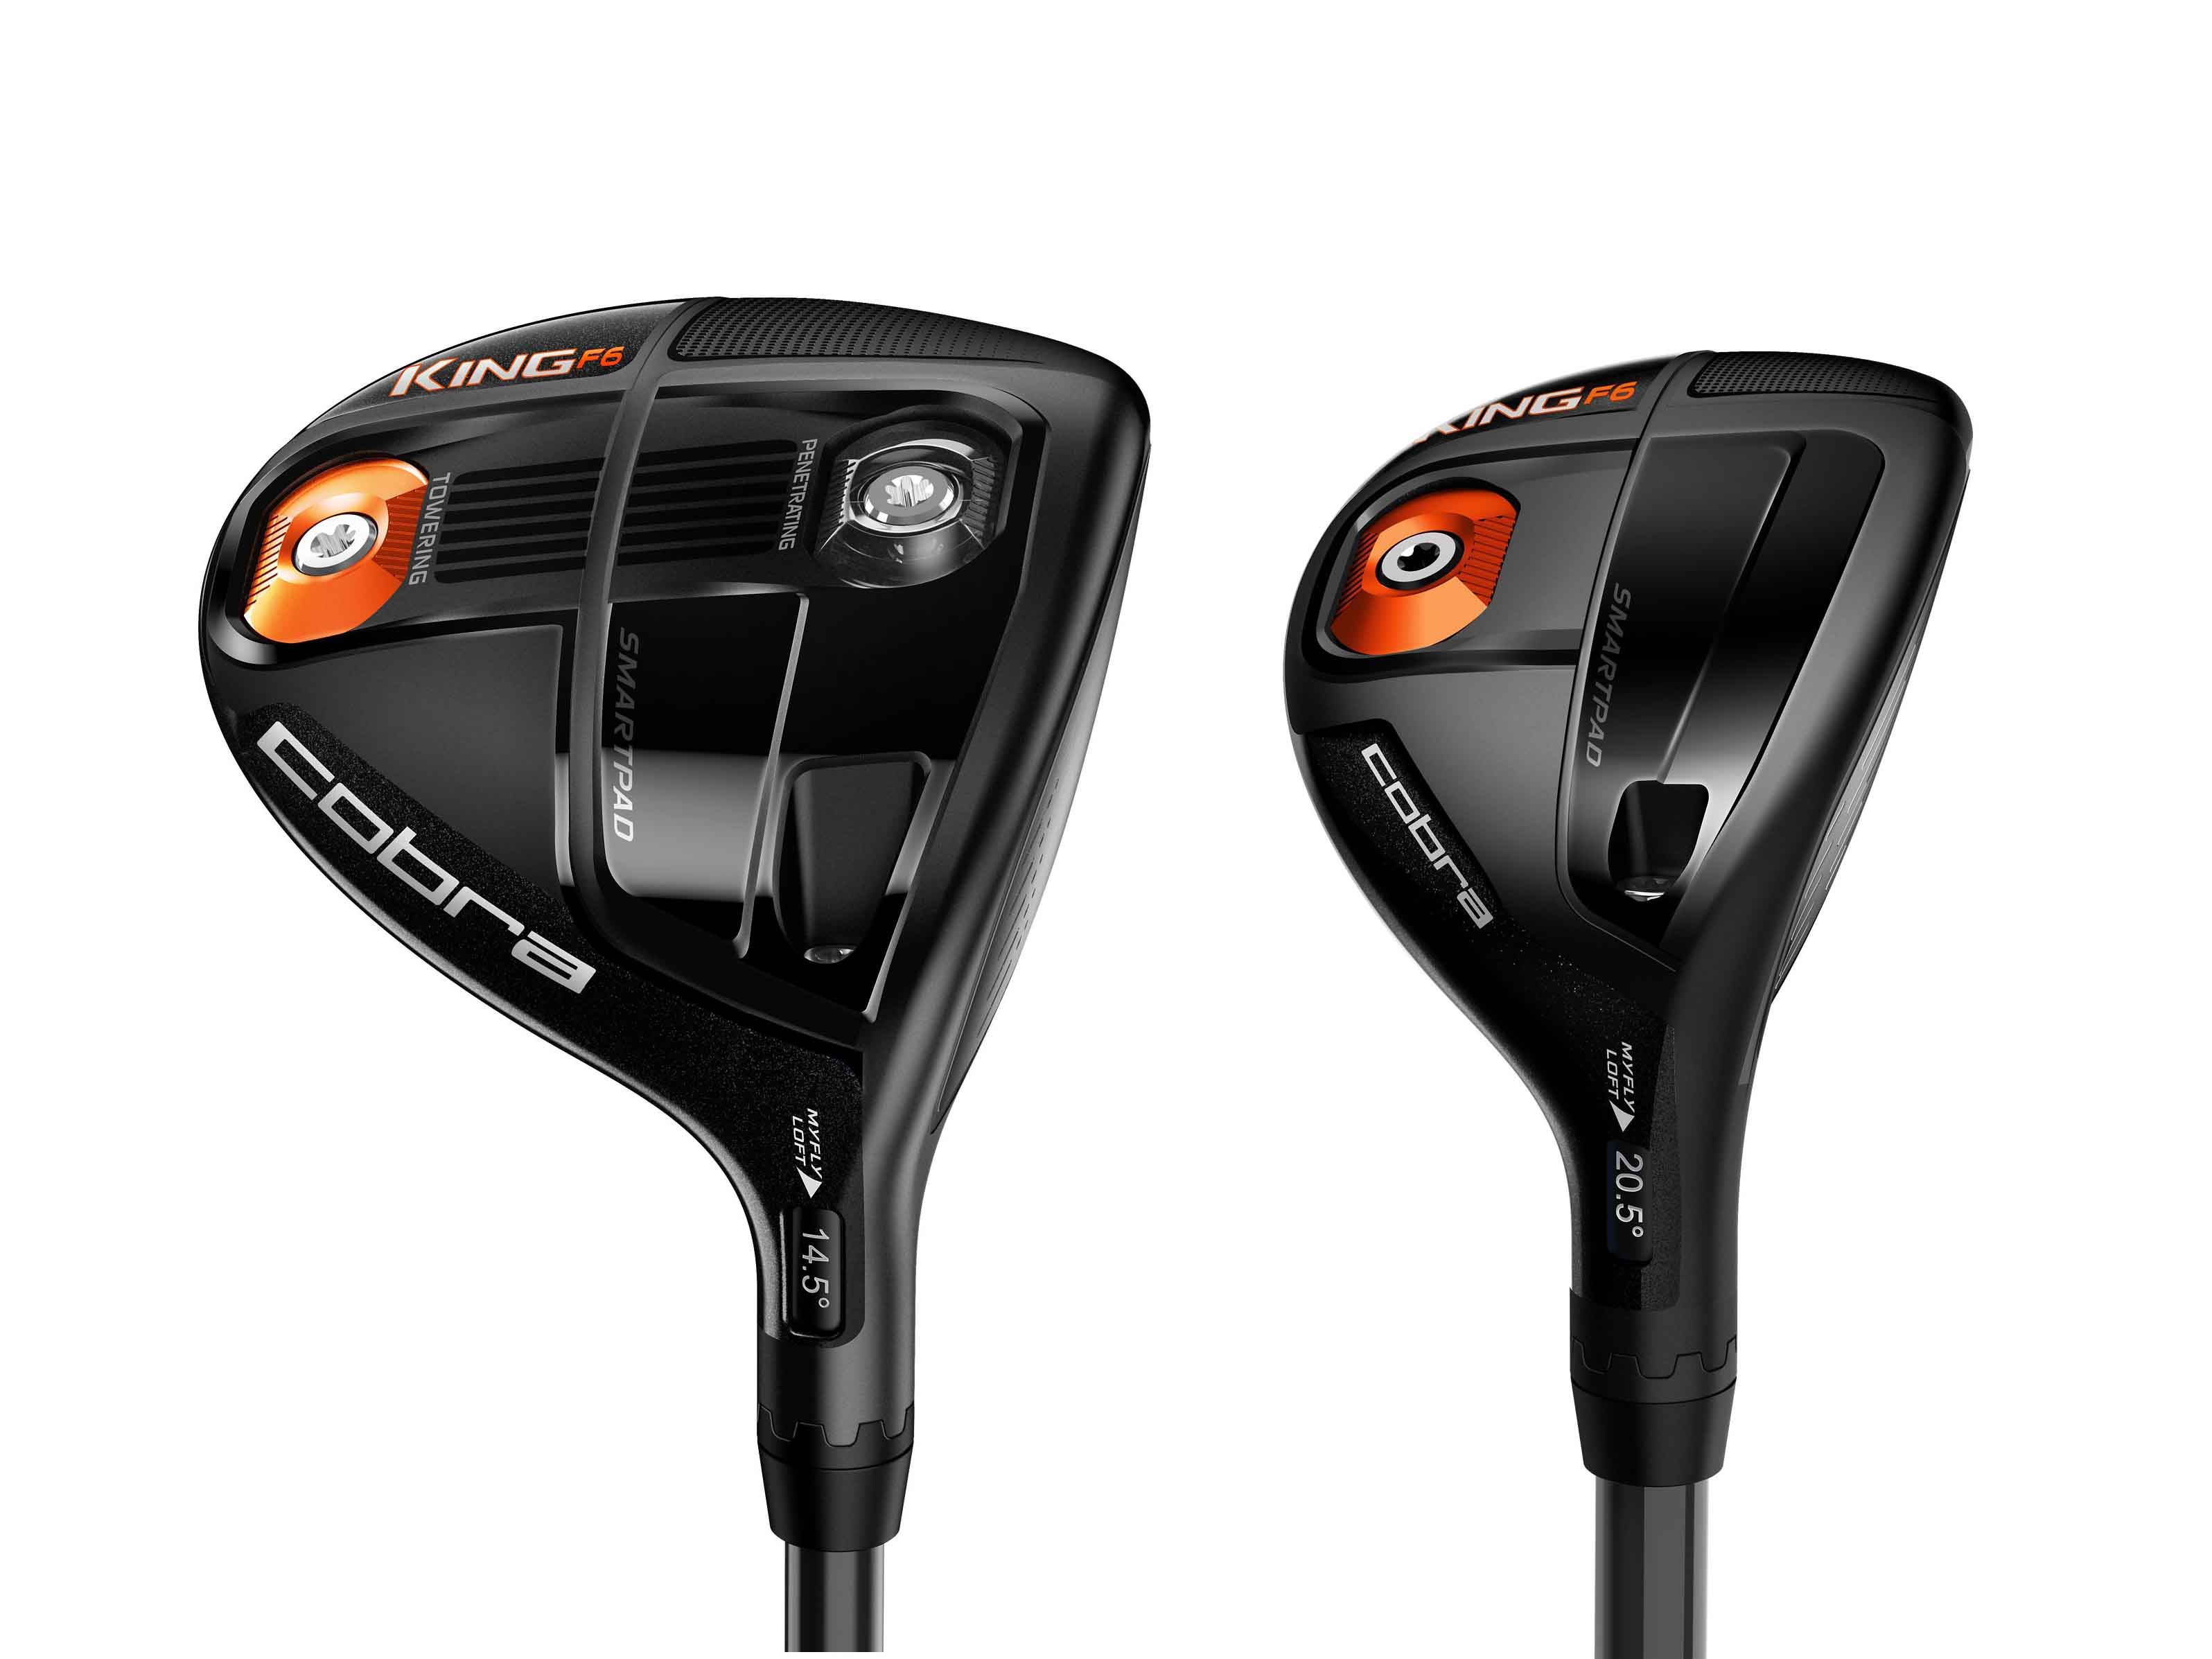 Cobra King F6 Woods Unveiled